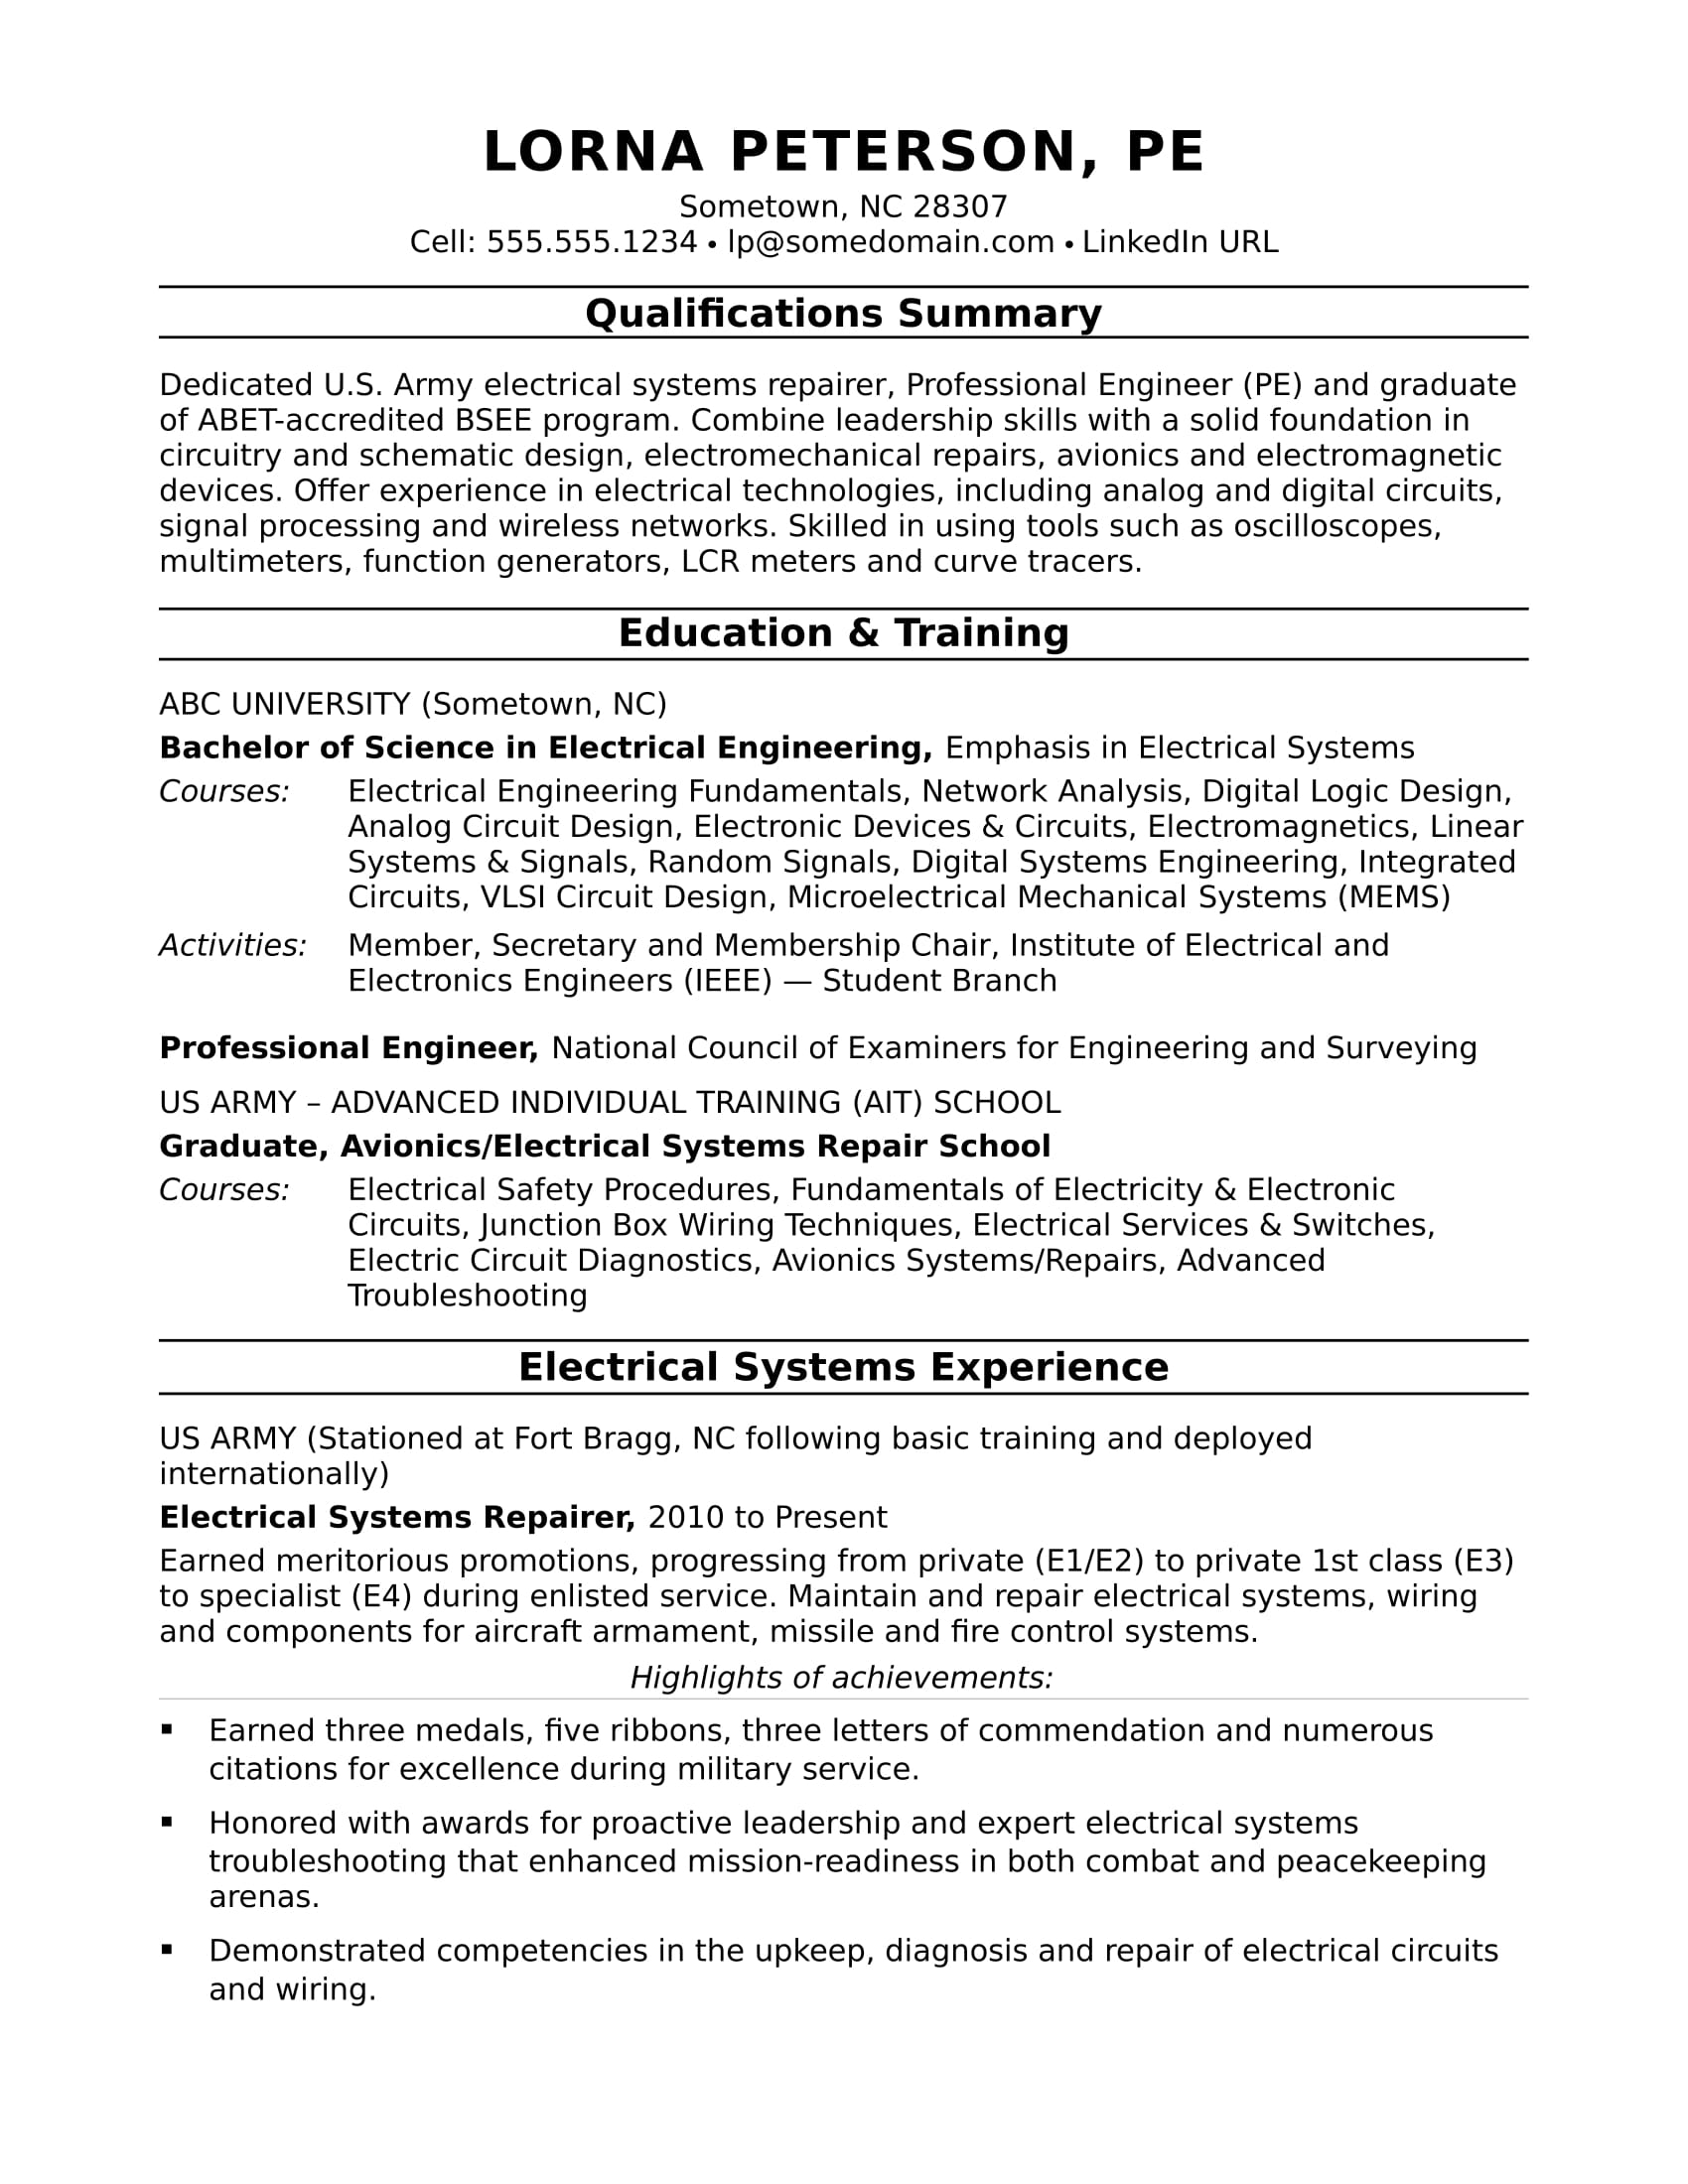 Sample Resume For A Midlevel Electrical Engineer  Electrical Engineer Resume Sample